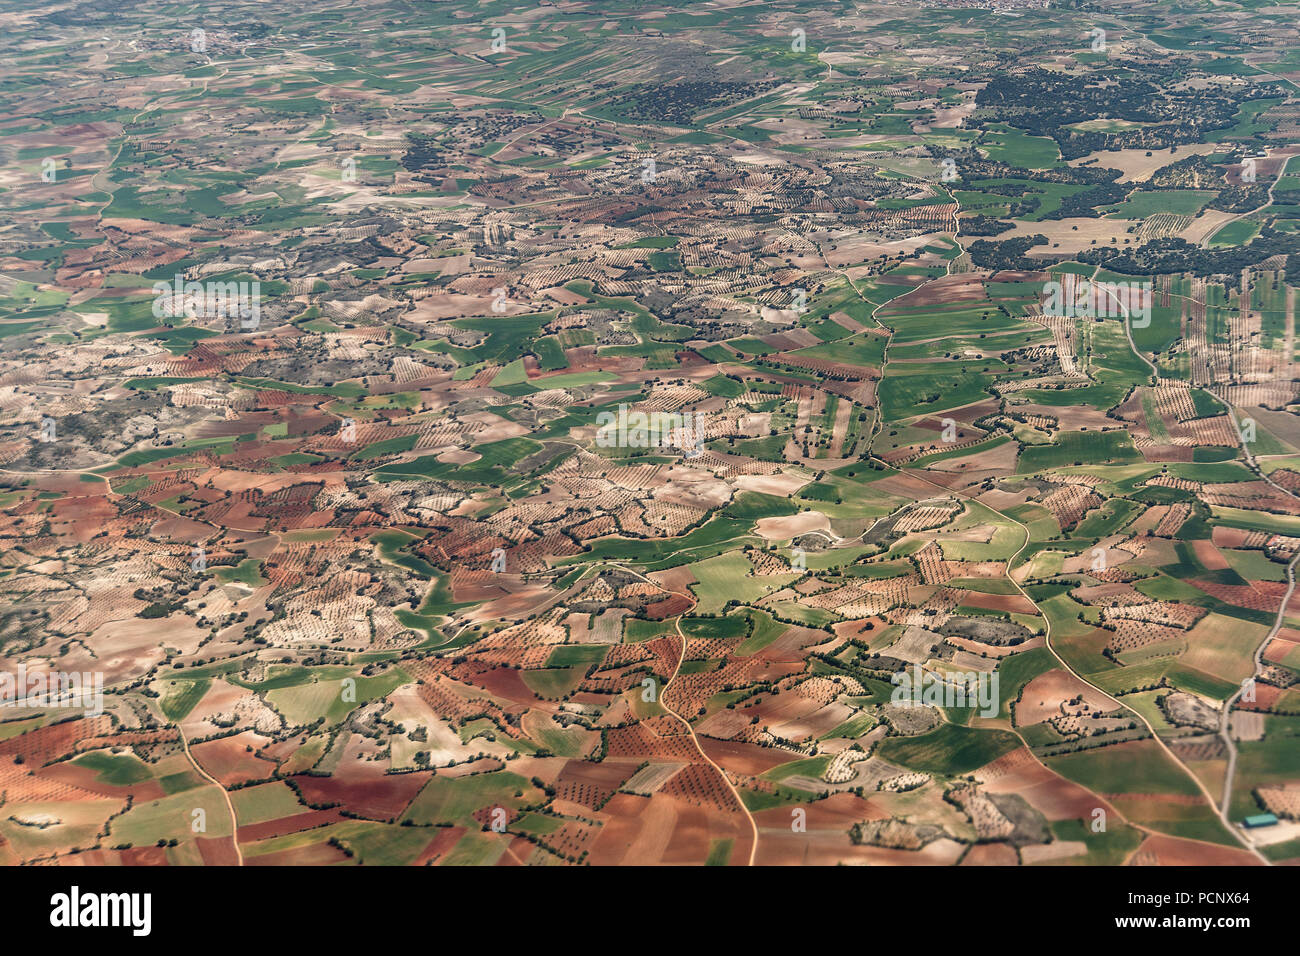 Aerial view, Iberian Peninsula, Spain, karstic plateau with fields - Stock Image